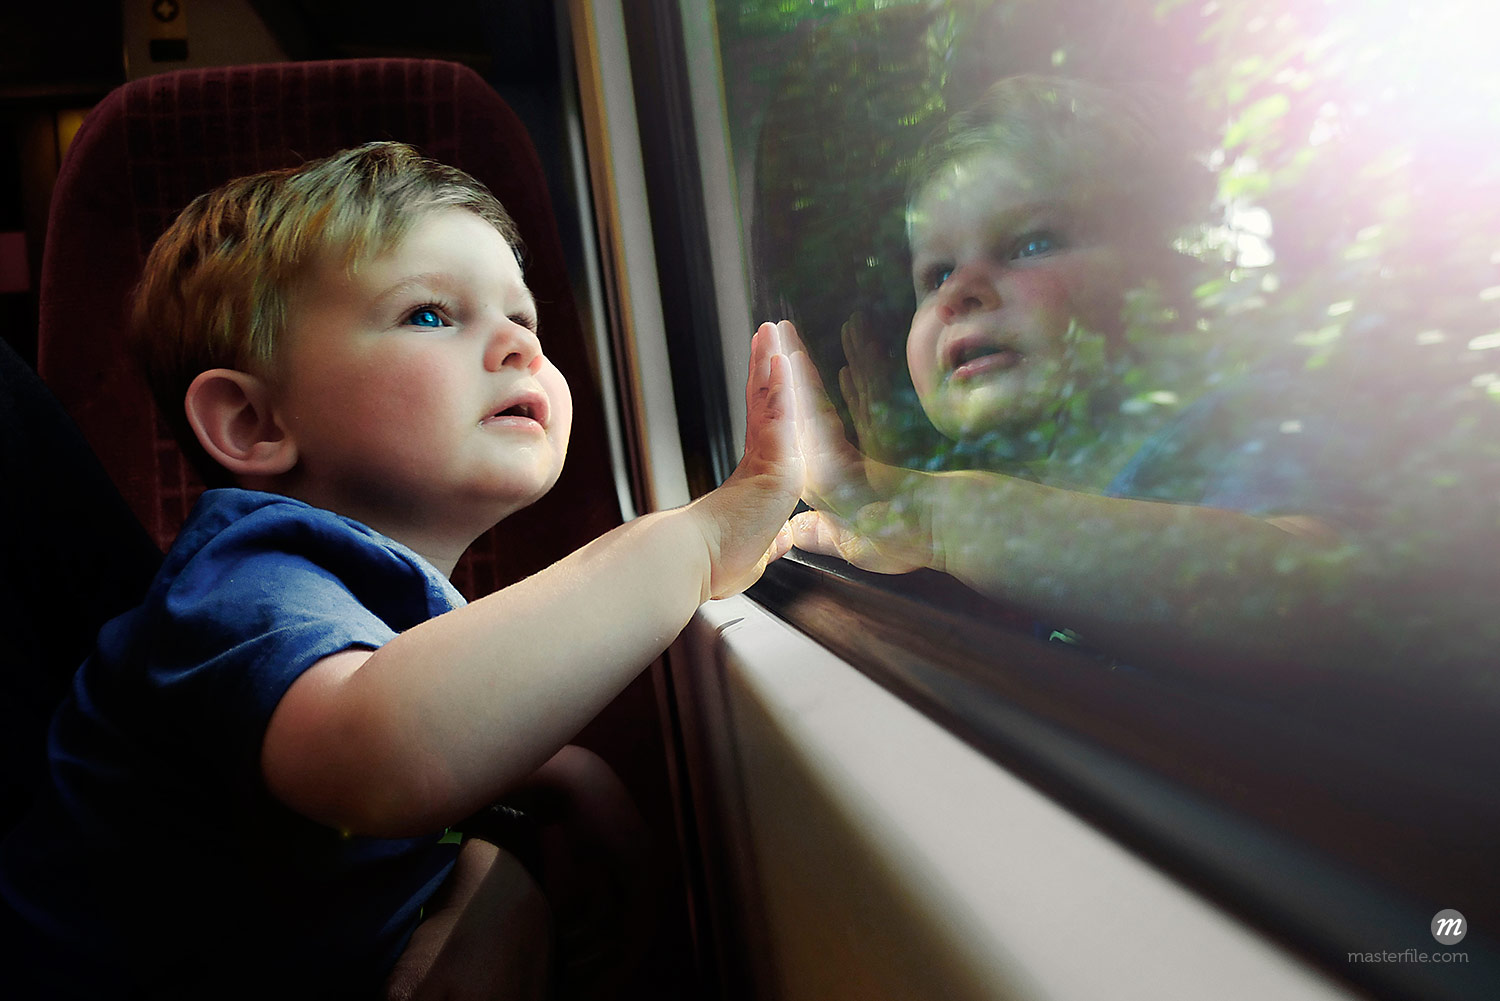 Male toddler gazing out train window in awe  © Masterfile